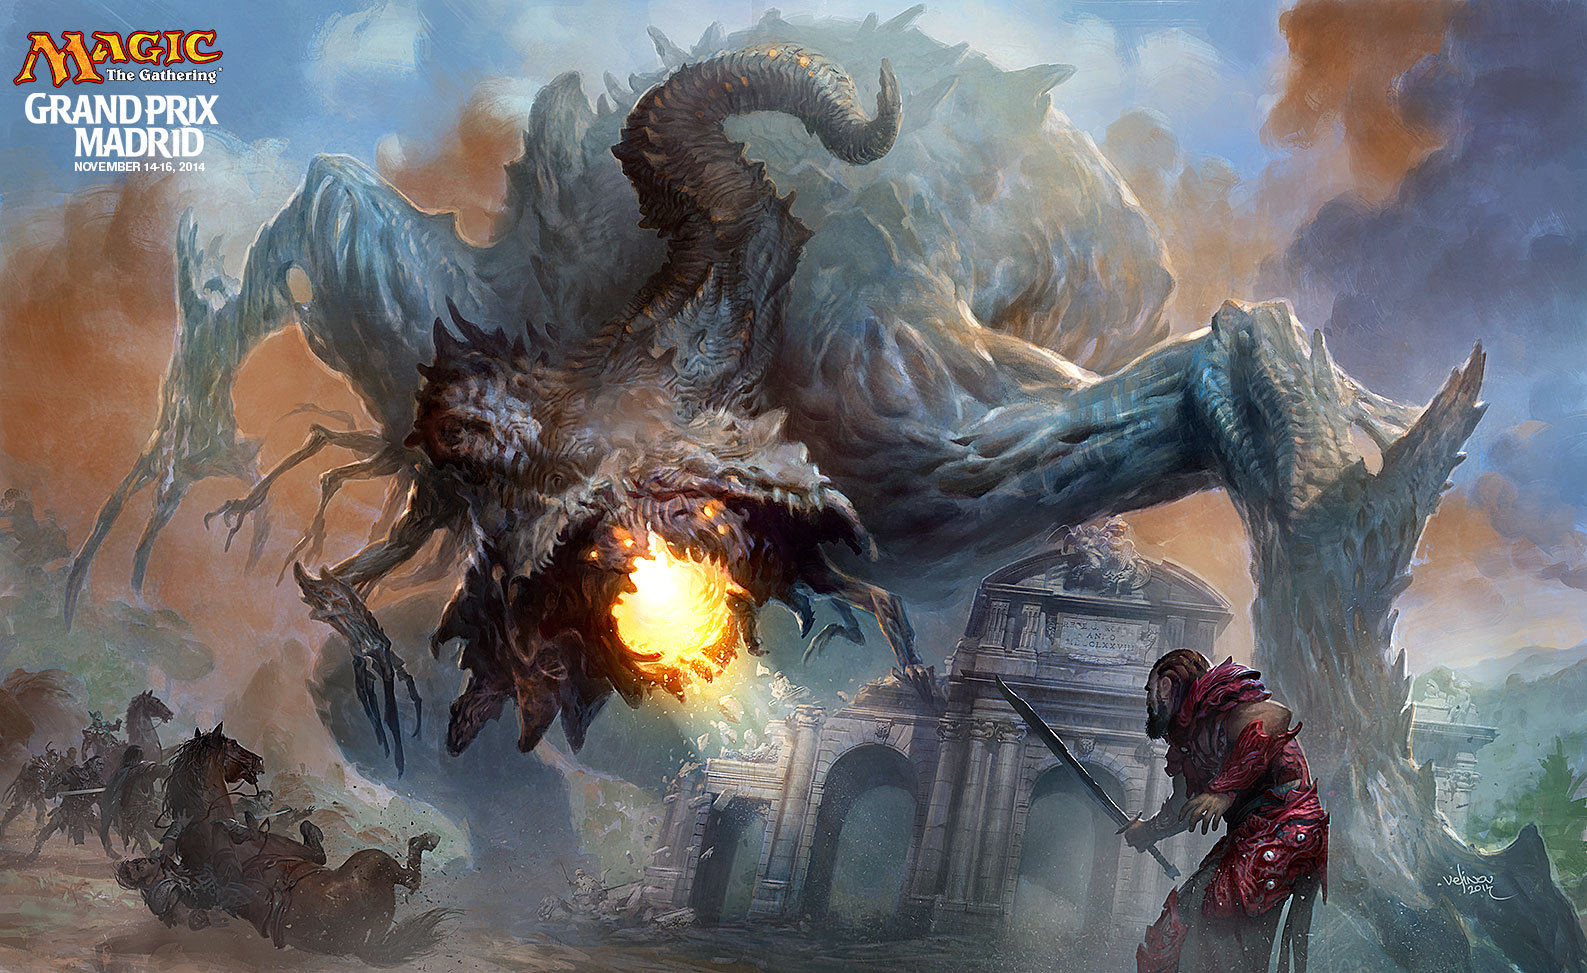 Svetlin velinov mtg gp madrid playmat 2014